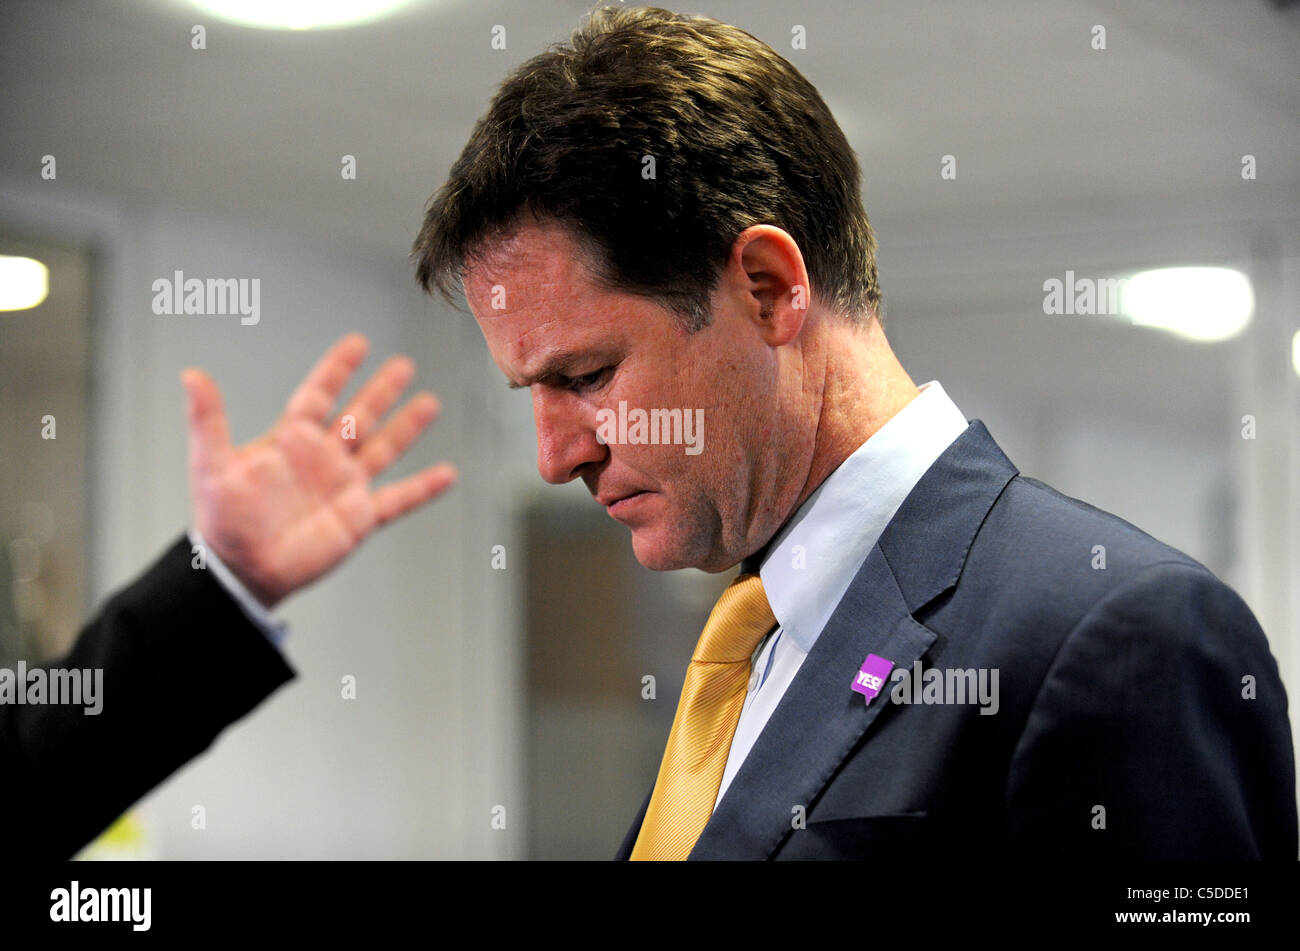 A hand looks like its about to slap Deputy Prime Minister Nick Clegg during a visit to the Newhaven Enterprise Centre - Stock Image